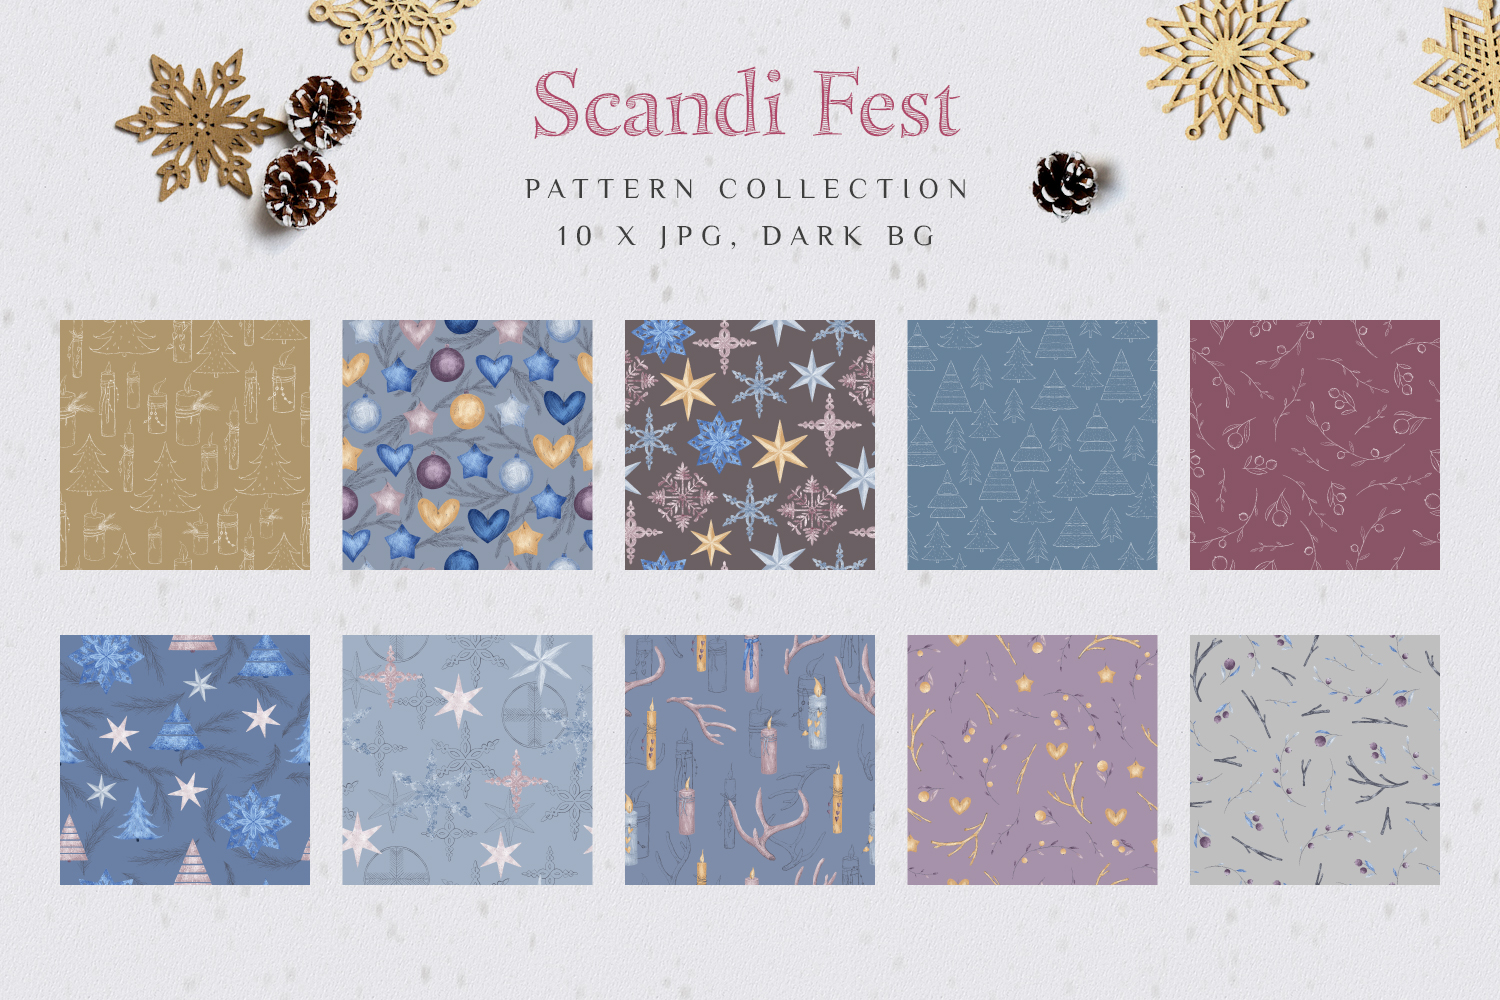 Scandi Fest - Patterns